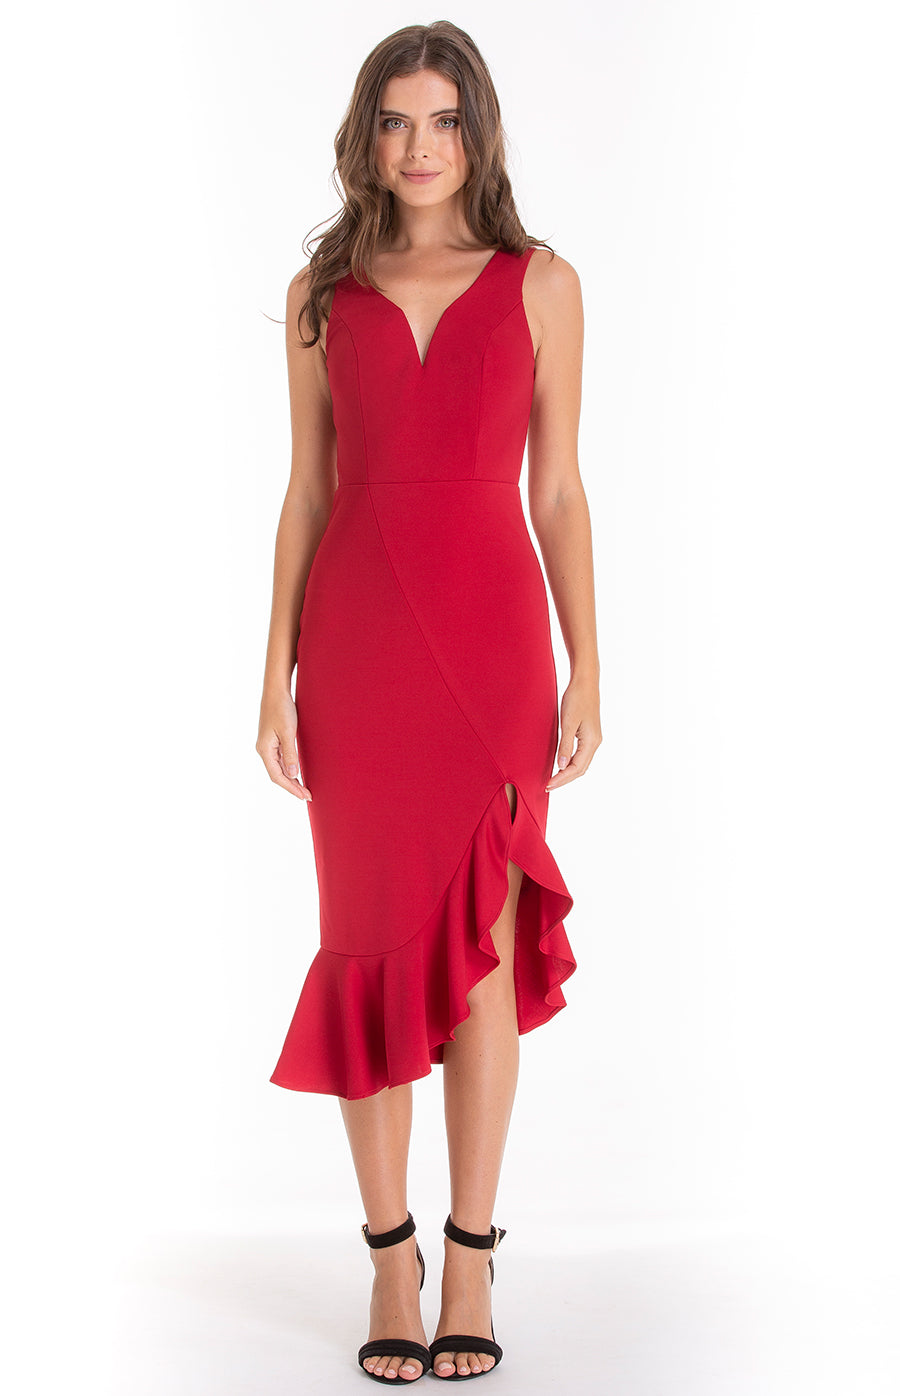 JULIET RED DRESS - Saphyra Boutique